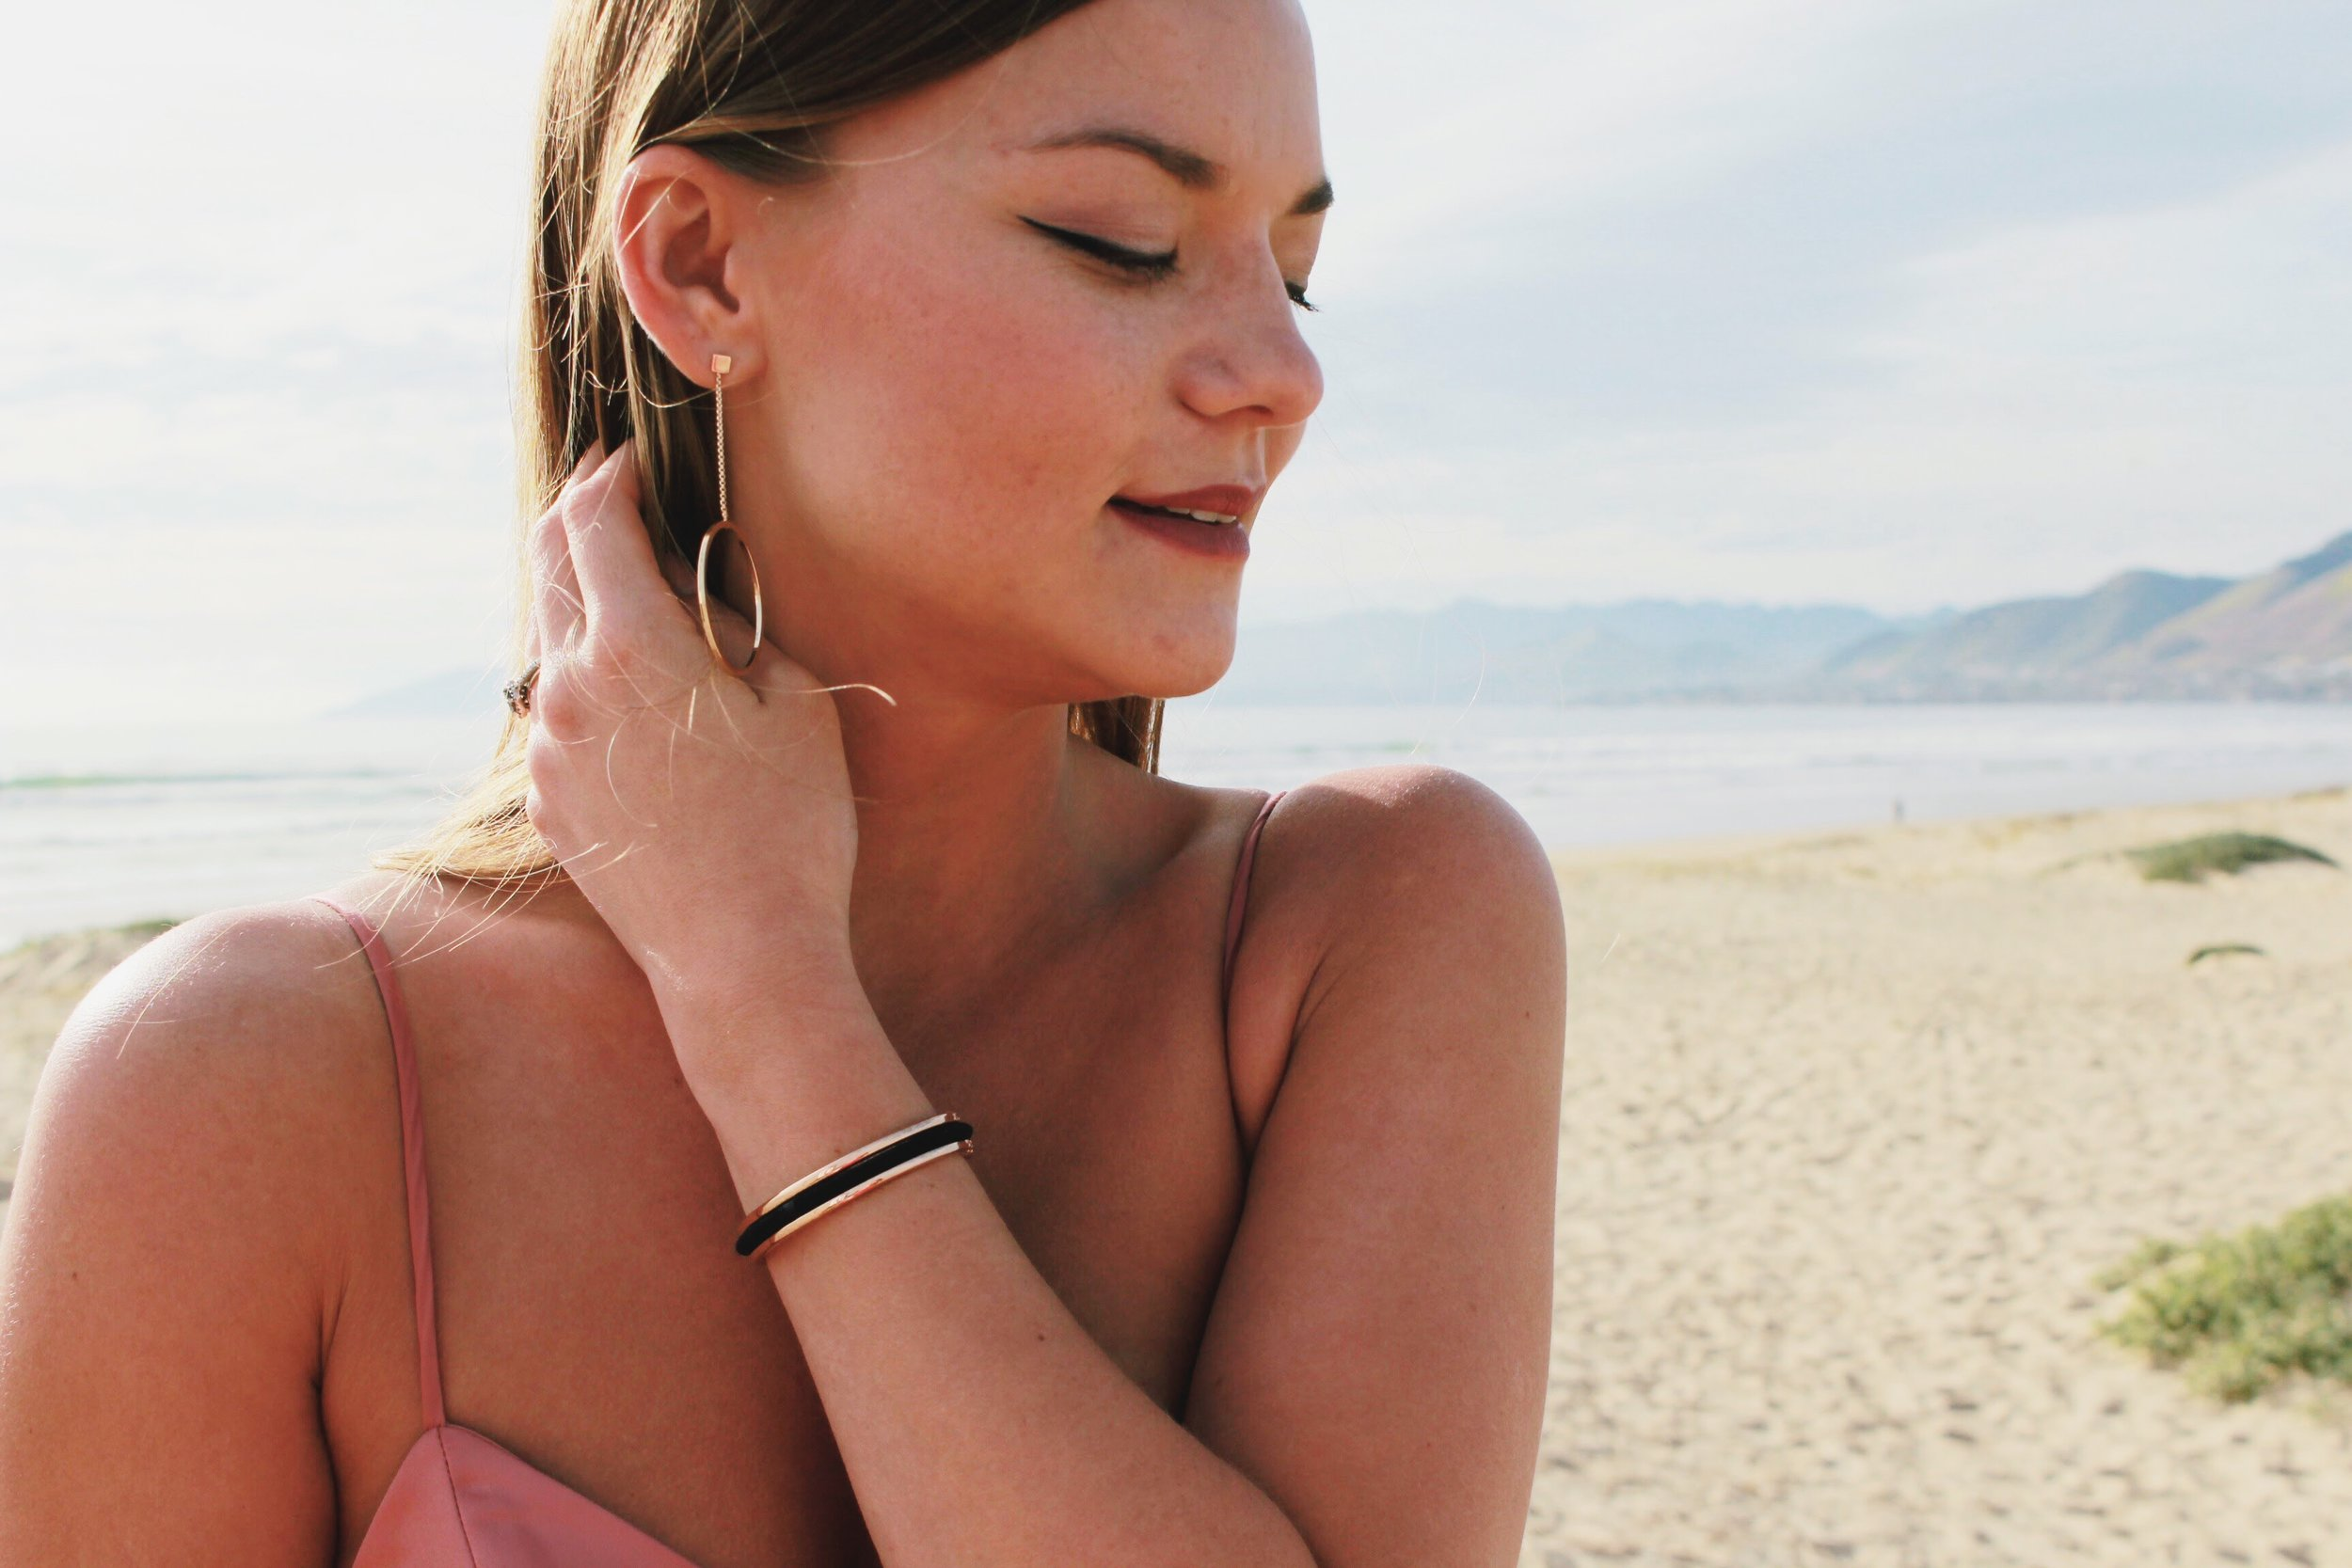 Gold Dangle Earrings with Pink Satin Dress and Gold Floral HairTie Bracelet with a beach Background.